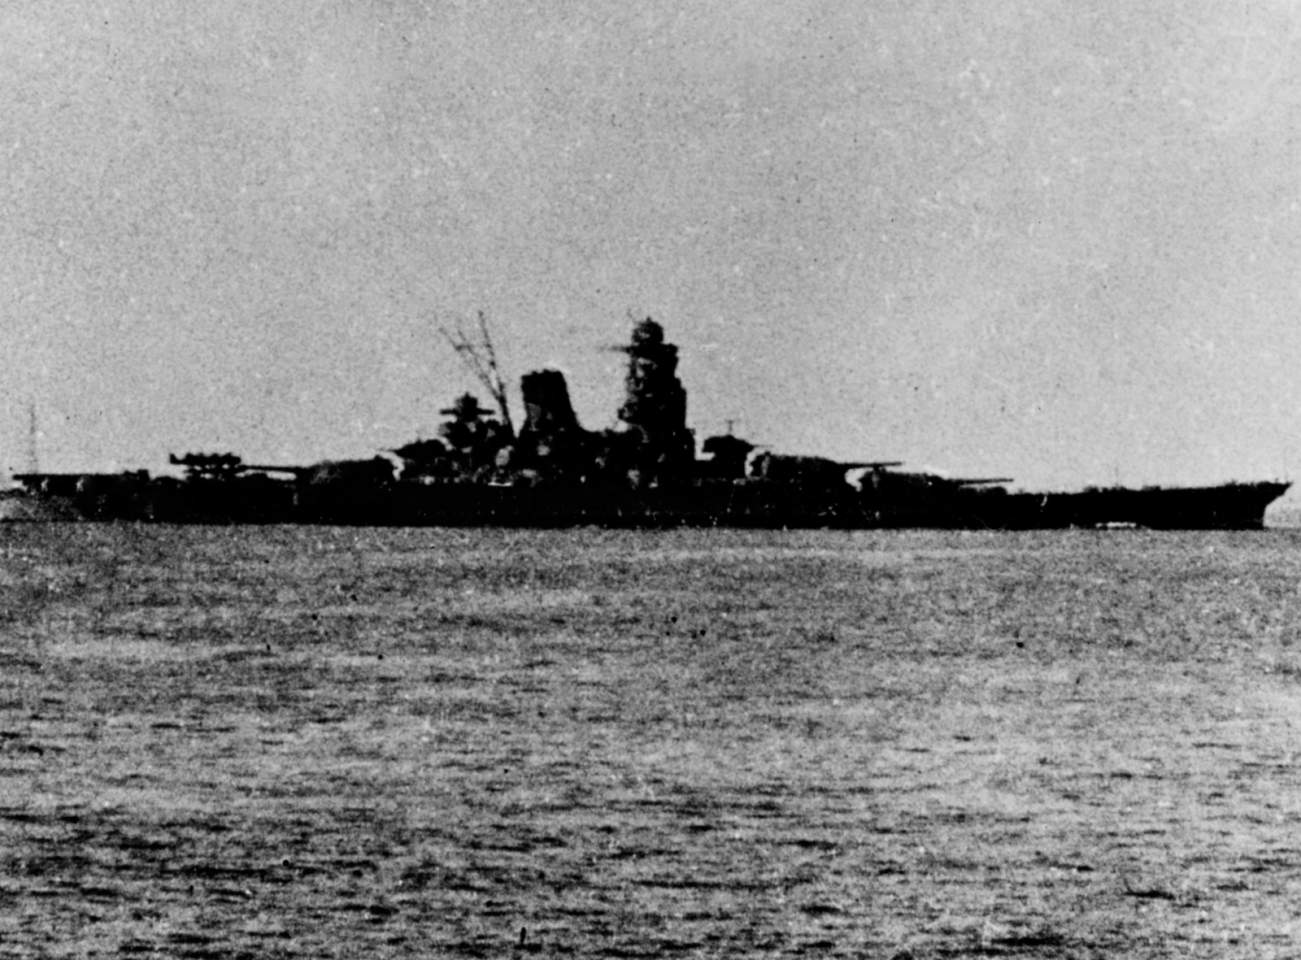 Largest Naval Battle Ever: U.S. Aircraft Carriers and Battleships Fought Japan at Leyte Gulf